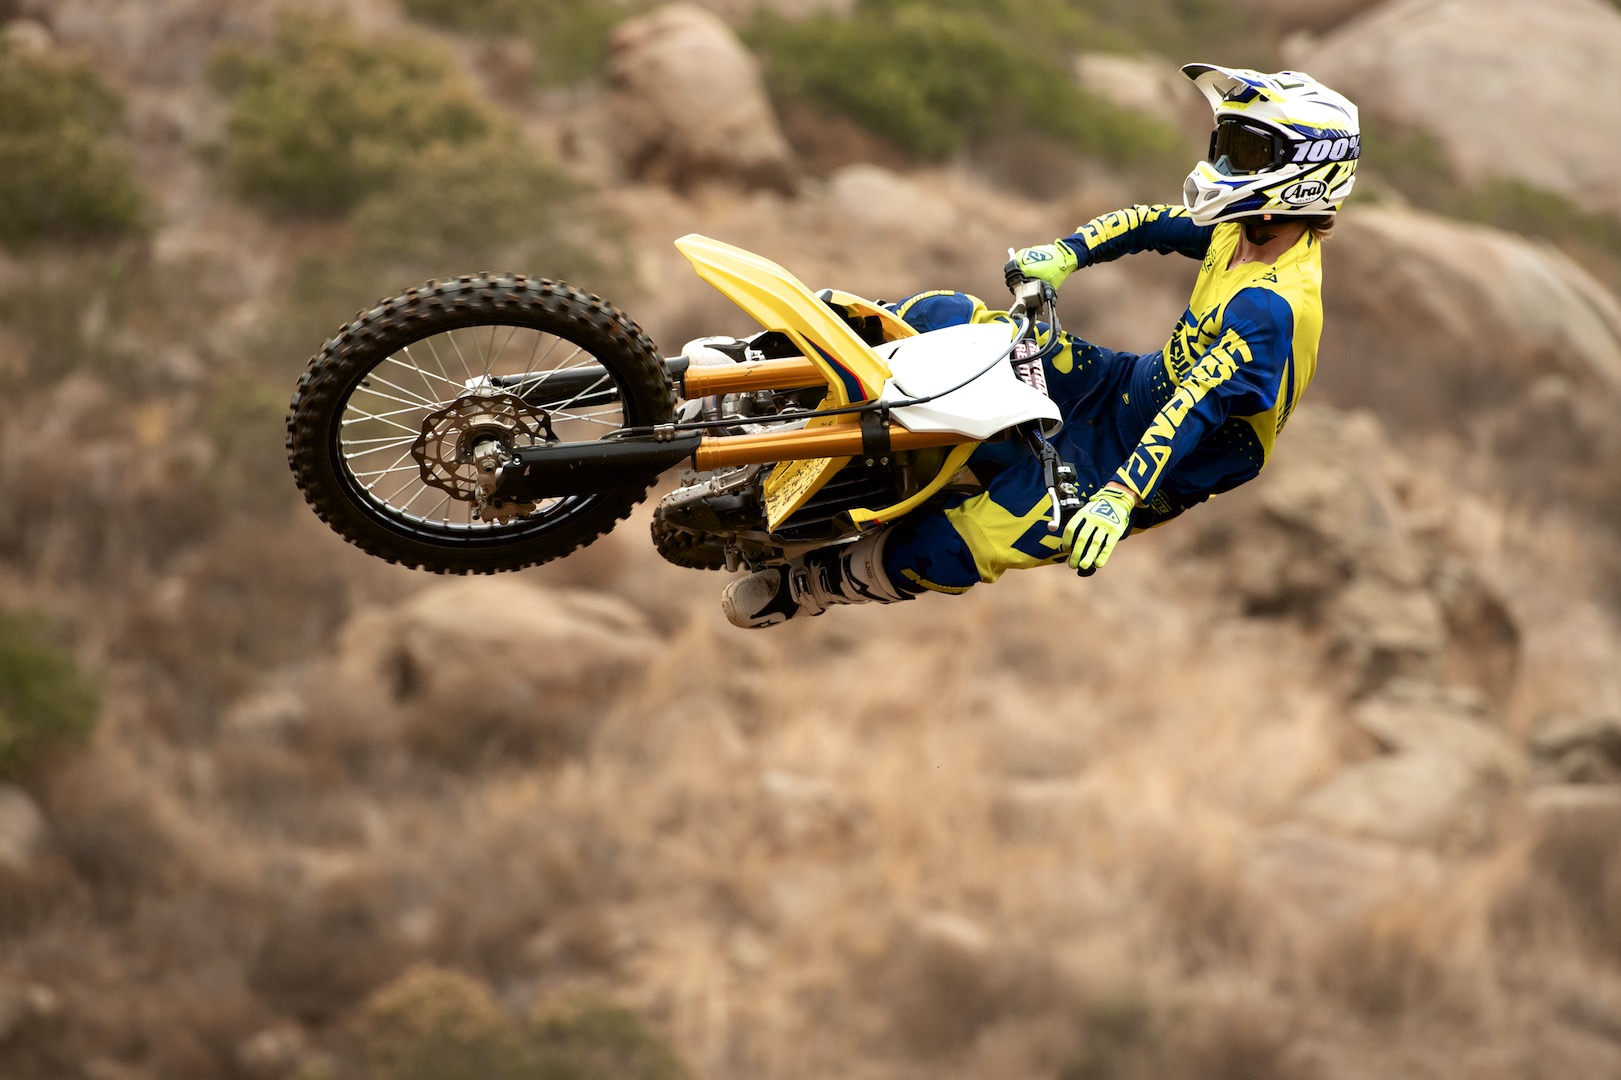 2019 Suzuki Rm Z250 Second Quot First Look Quot 24 Fast Facts